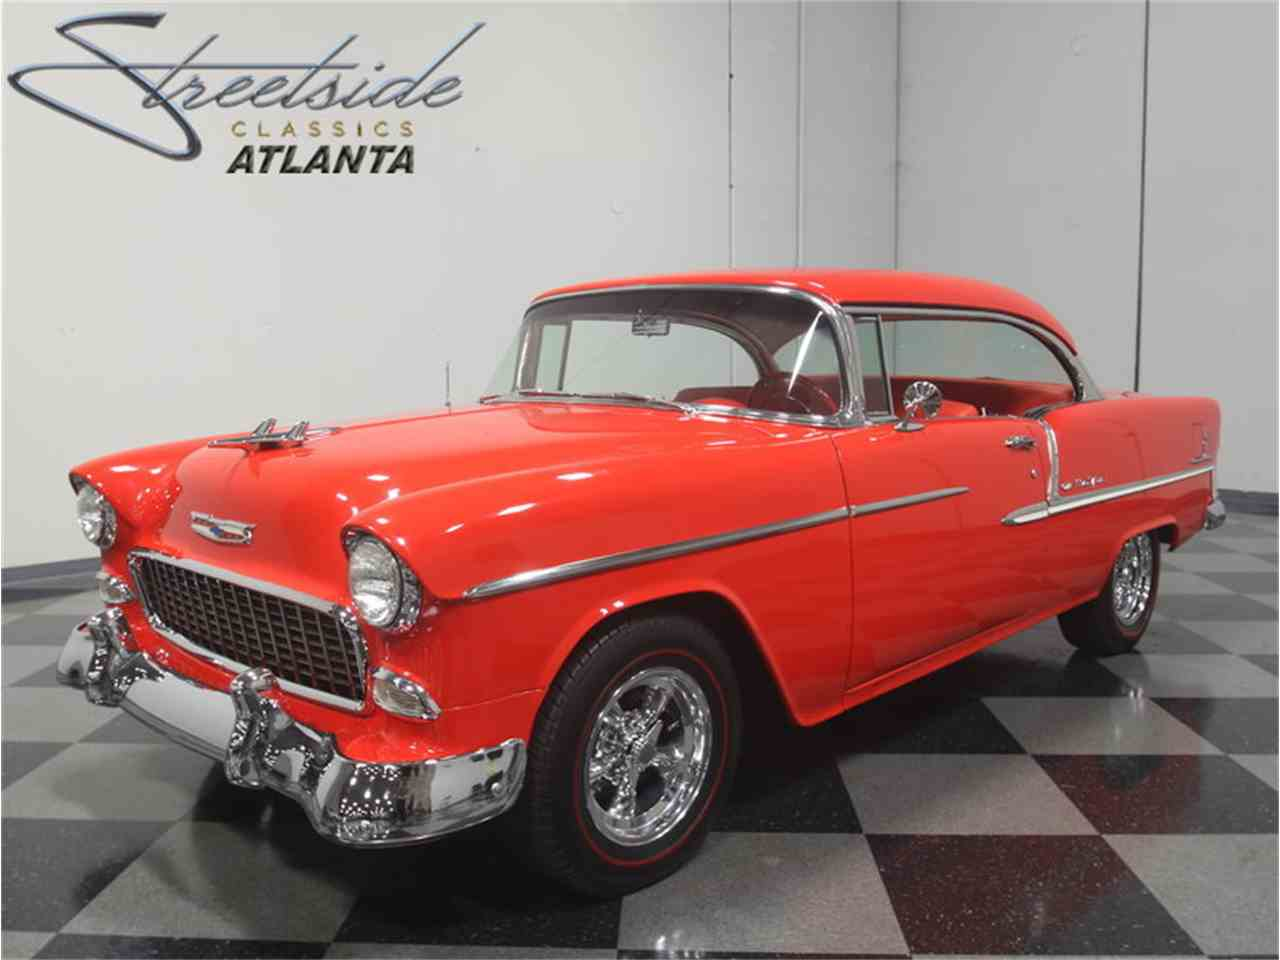 Chevrolet bel air hardtop for sale upcoming chevrolet - 1955 Chevrolet Bel Air For Sale Cc 1007019